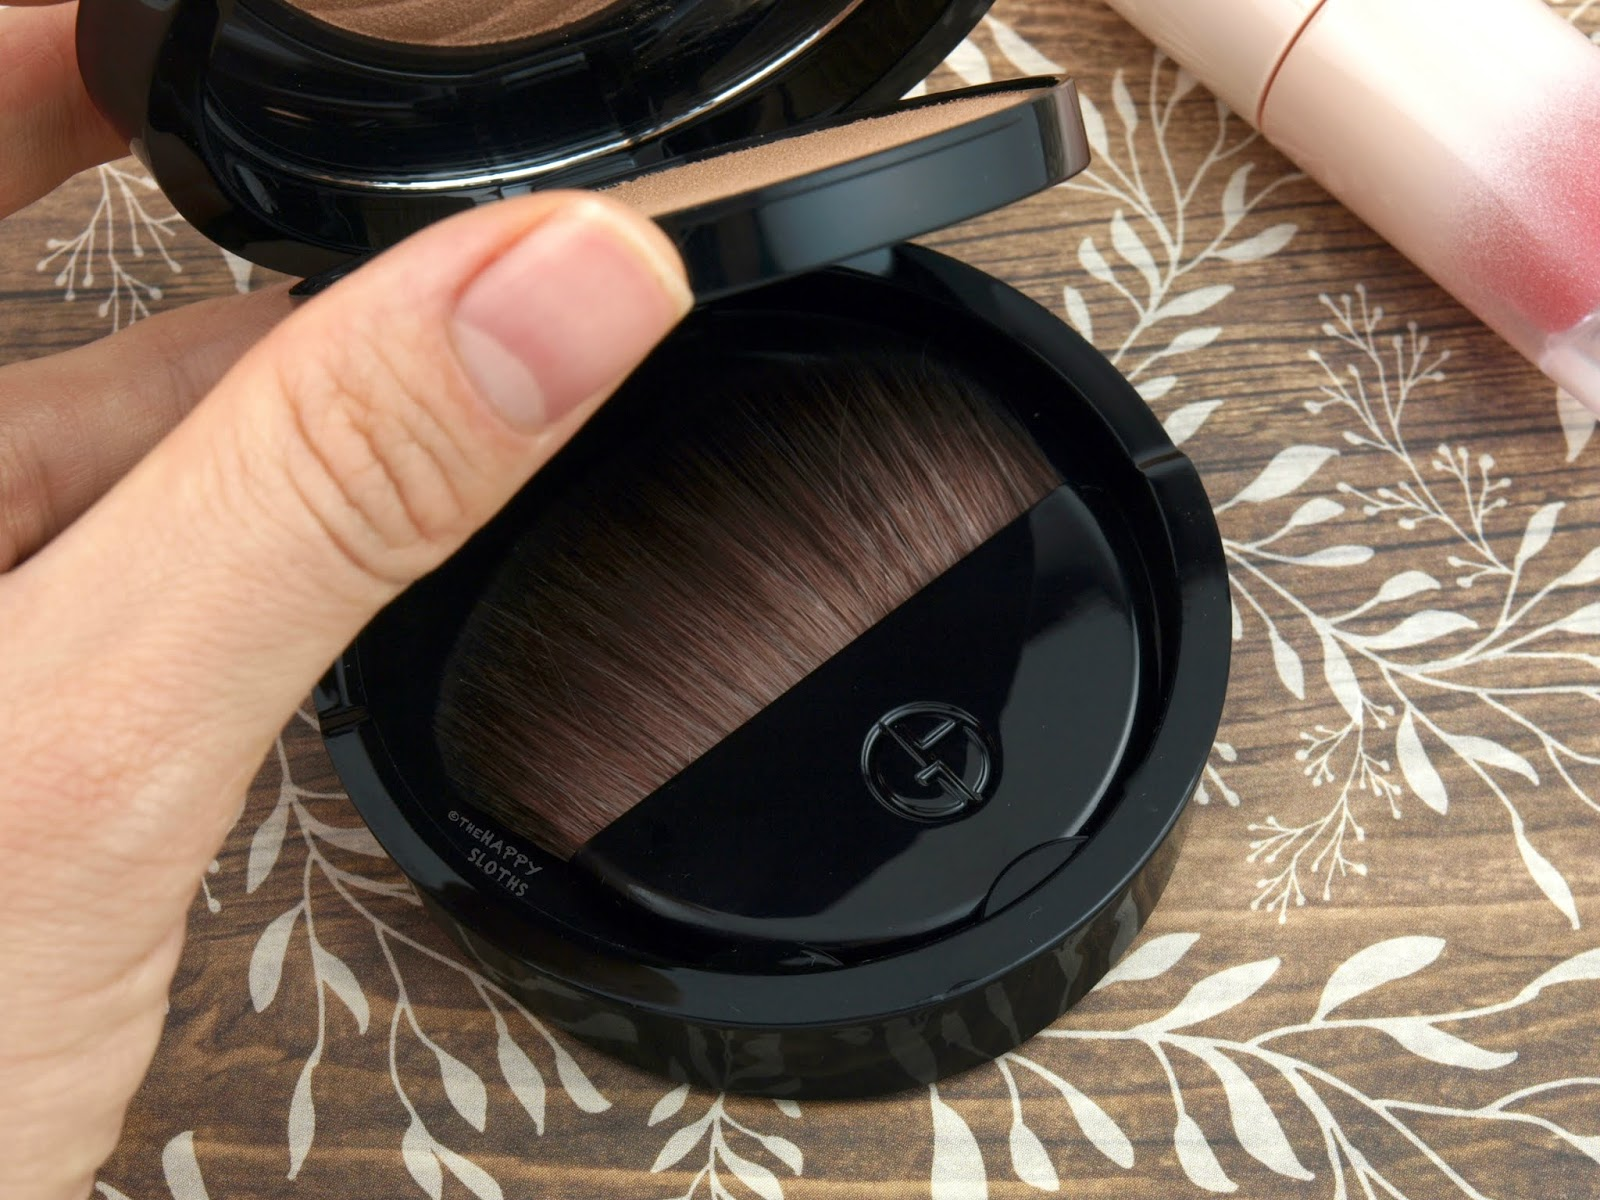 Giorgio Armani Beauty | Neo Nude Fusion Powder: Review and Swatches